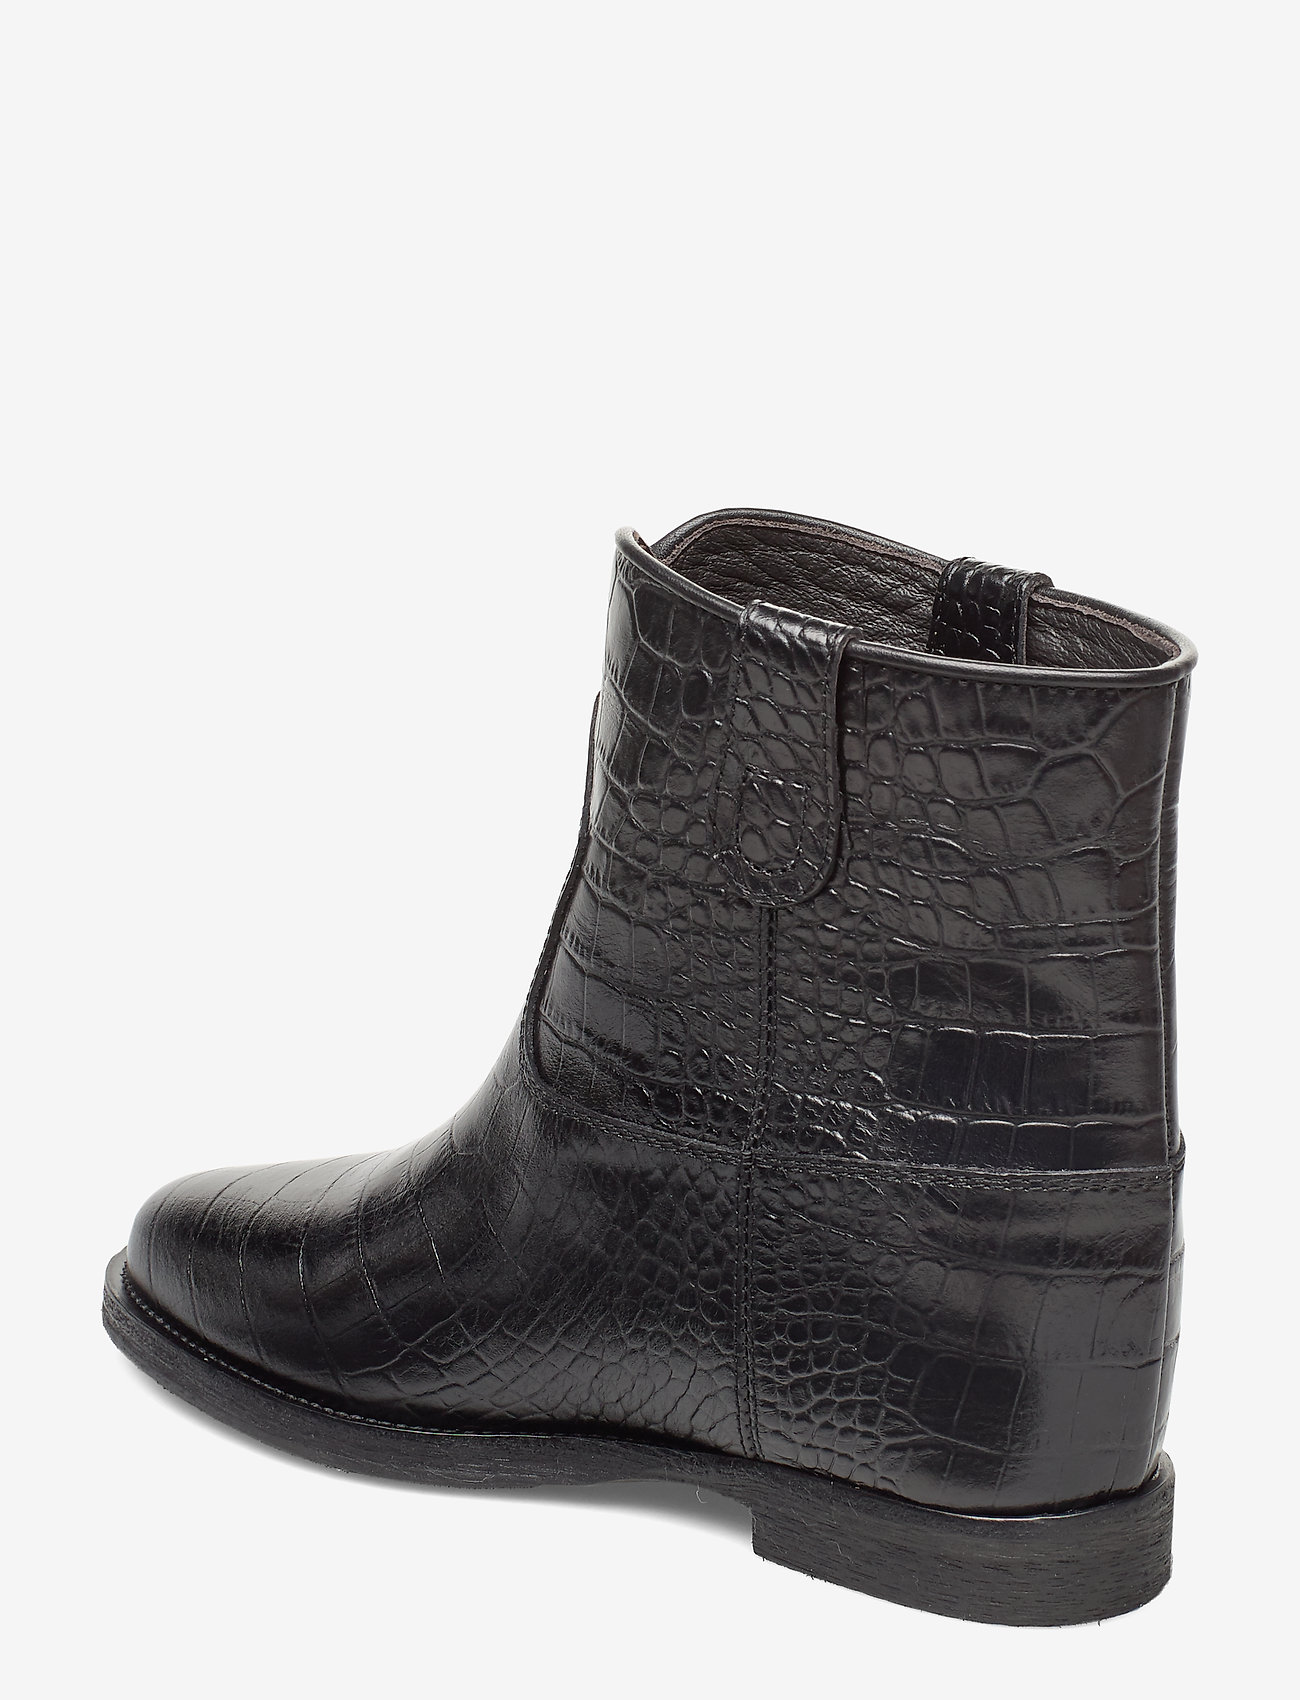 Isa (Black Croco Leather) - NOTABENE